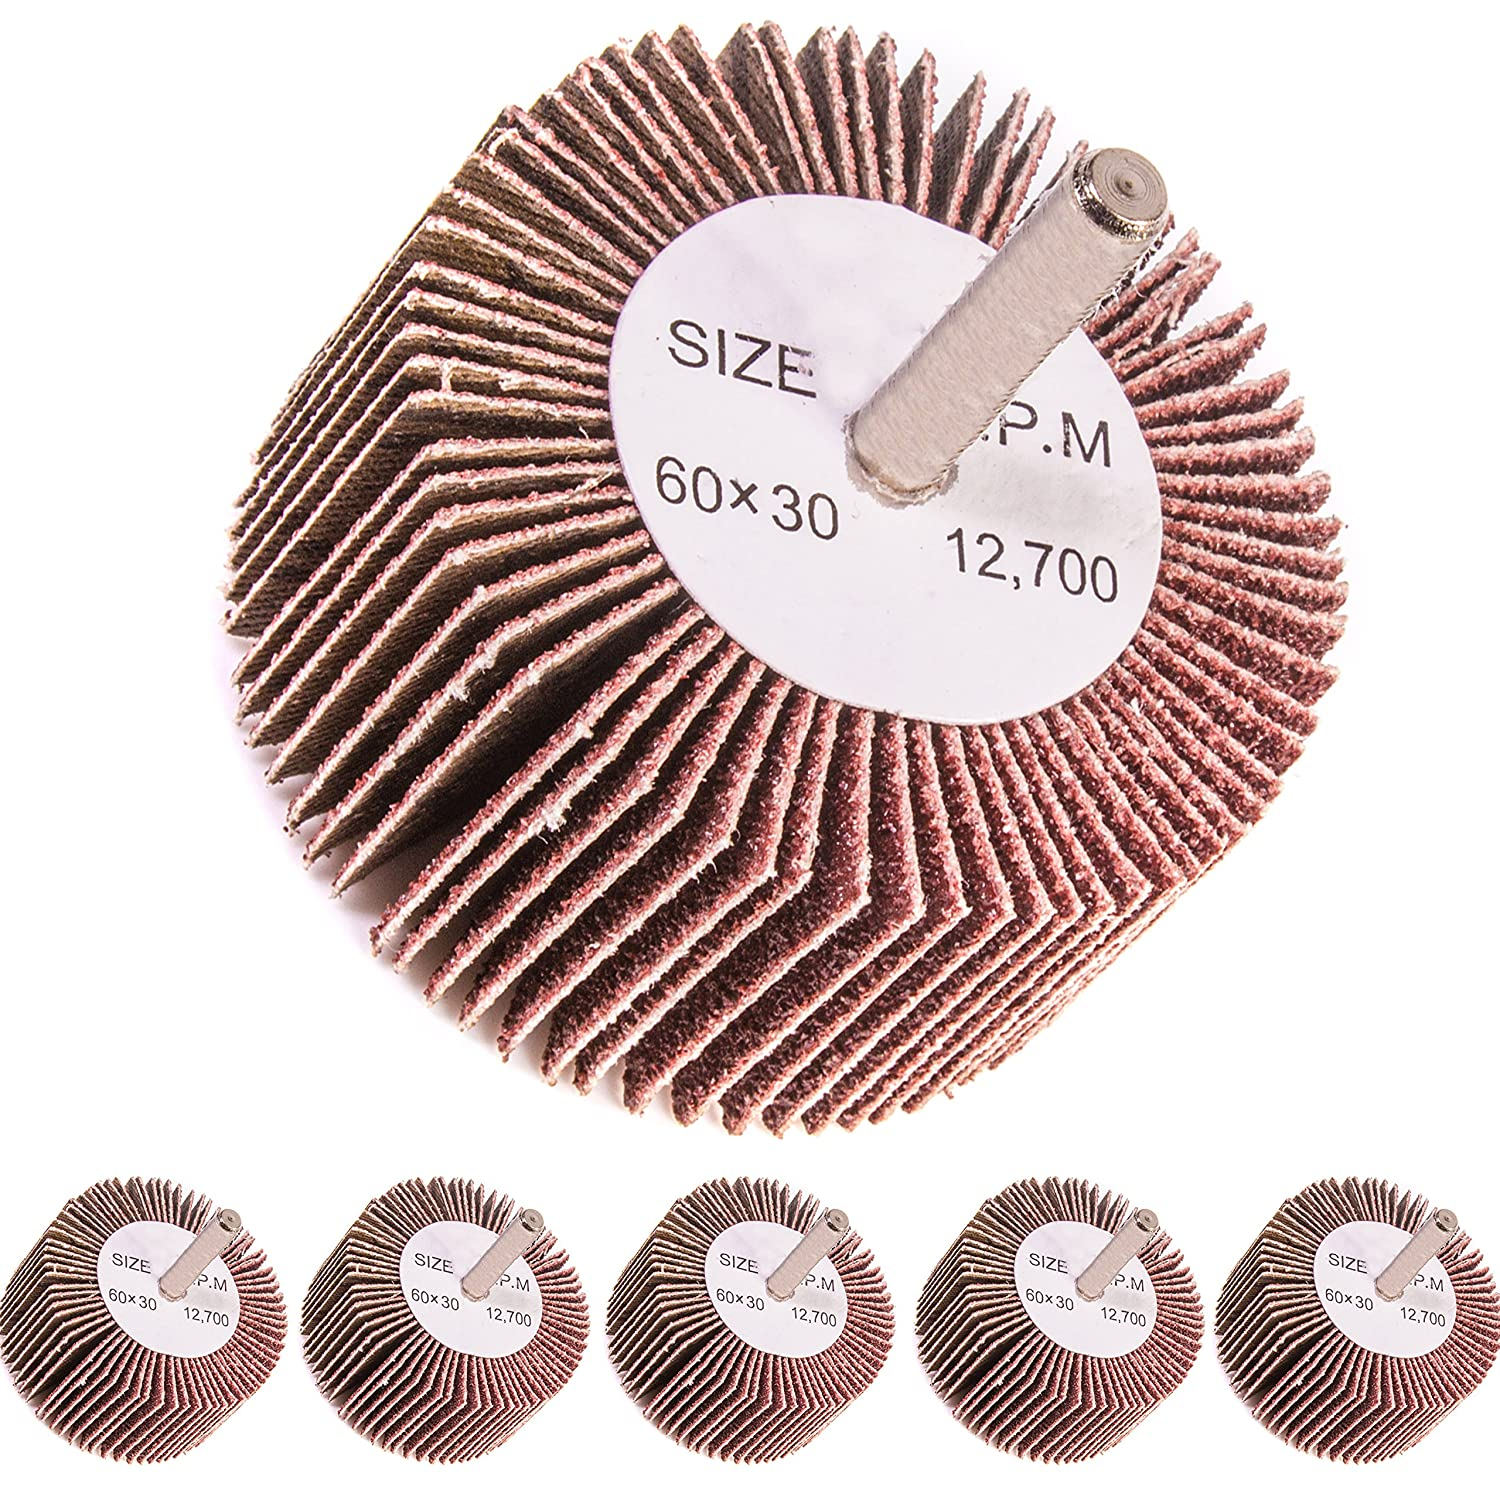 5x Coarse 80 Grit Flap Wheel Sanding Drill Bits - 6mm Shank - Abrasive Paint/Metal Remover White Hinge